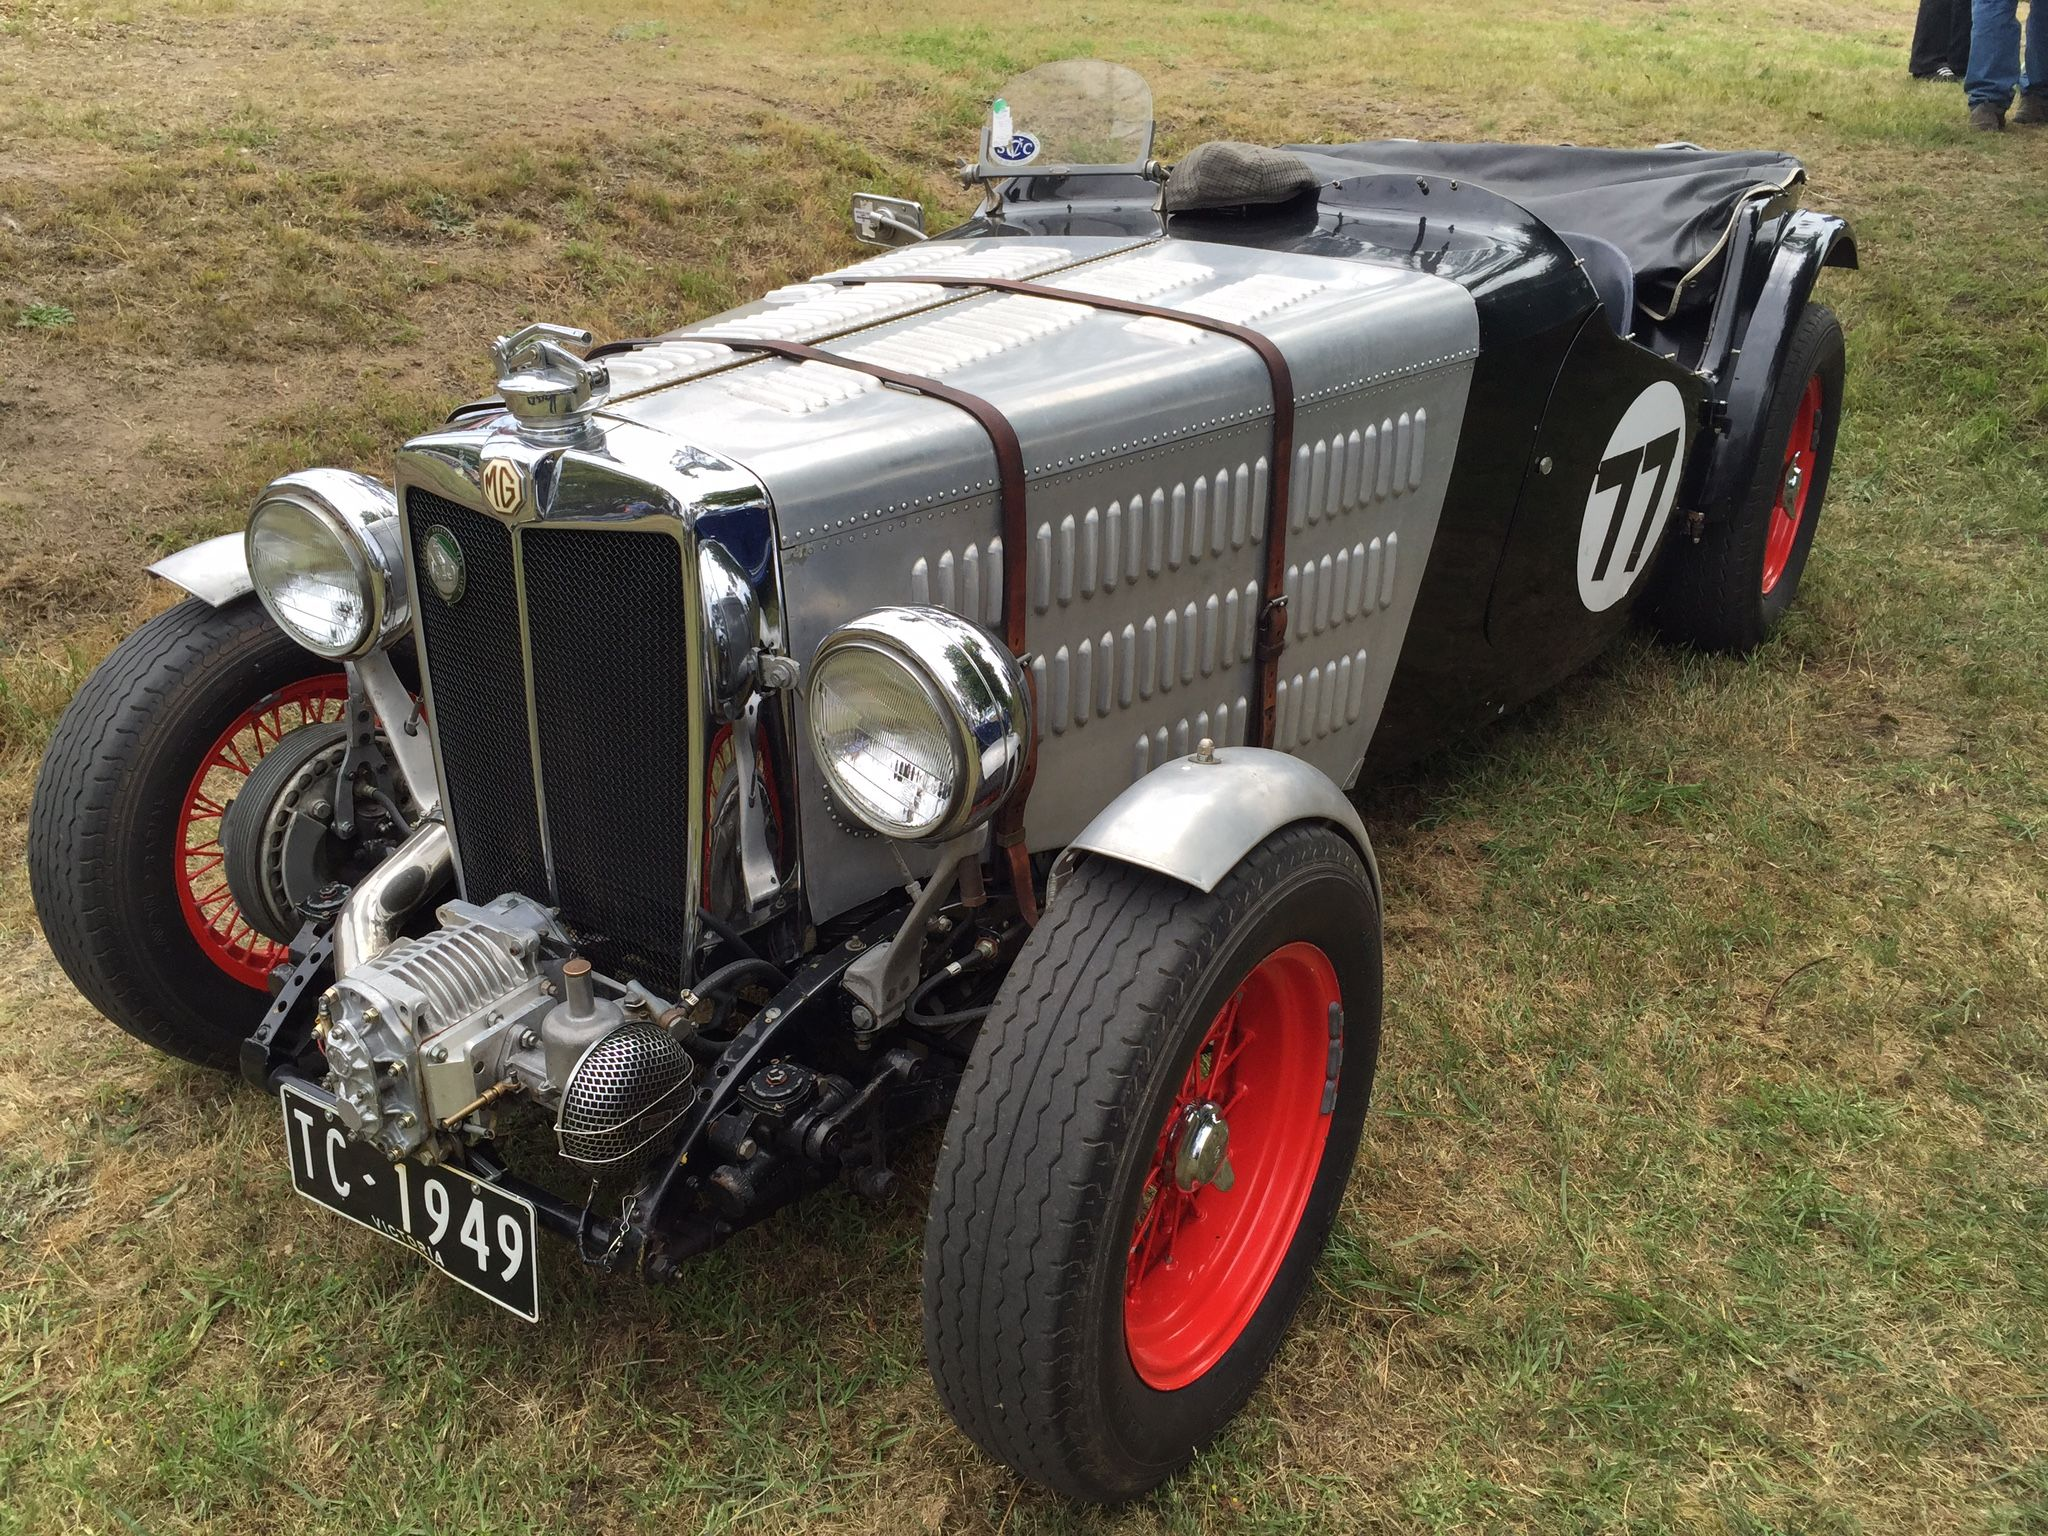 1949 MG TC Special | MG Cars | Pinterest | Cars, Vintage racing and ...